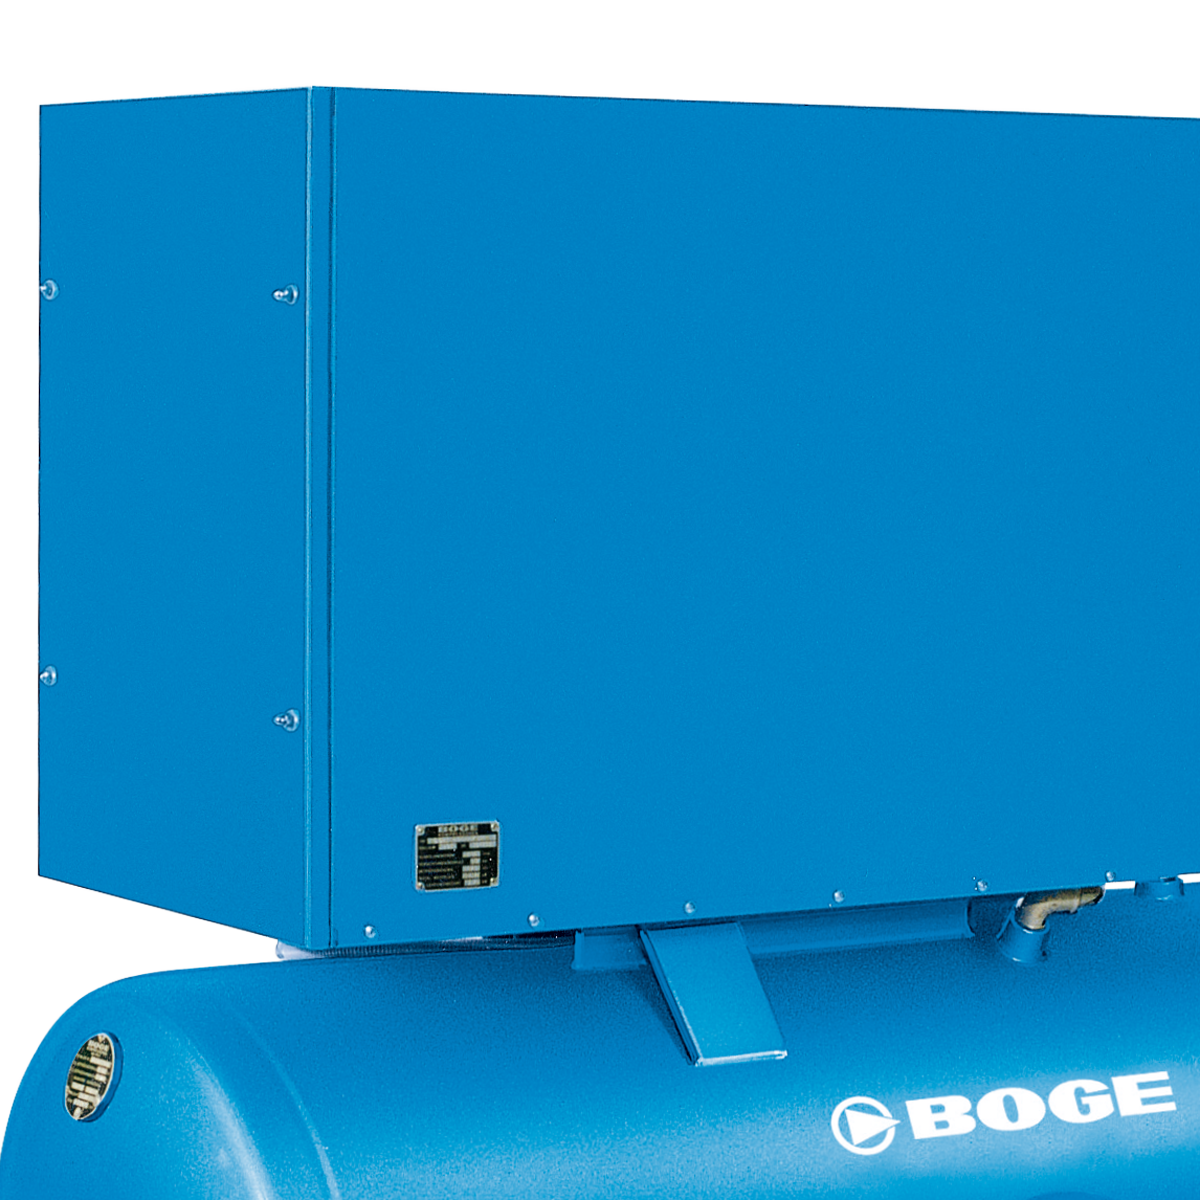 Piston Compressor Srd Up To 63 Kw Boge Compressors Piping Layout The Compact Design Ensures Fits Neatly Into Space Available Even Where This May Be Limited An Intelligent Of Component Parts